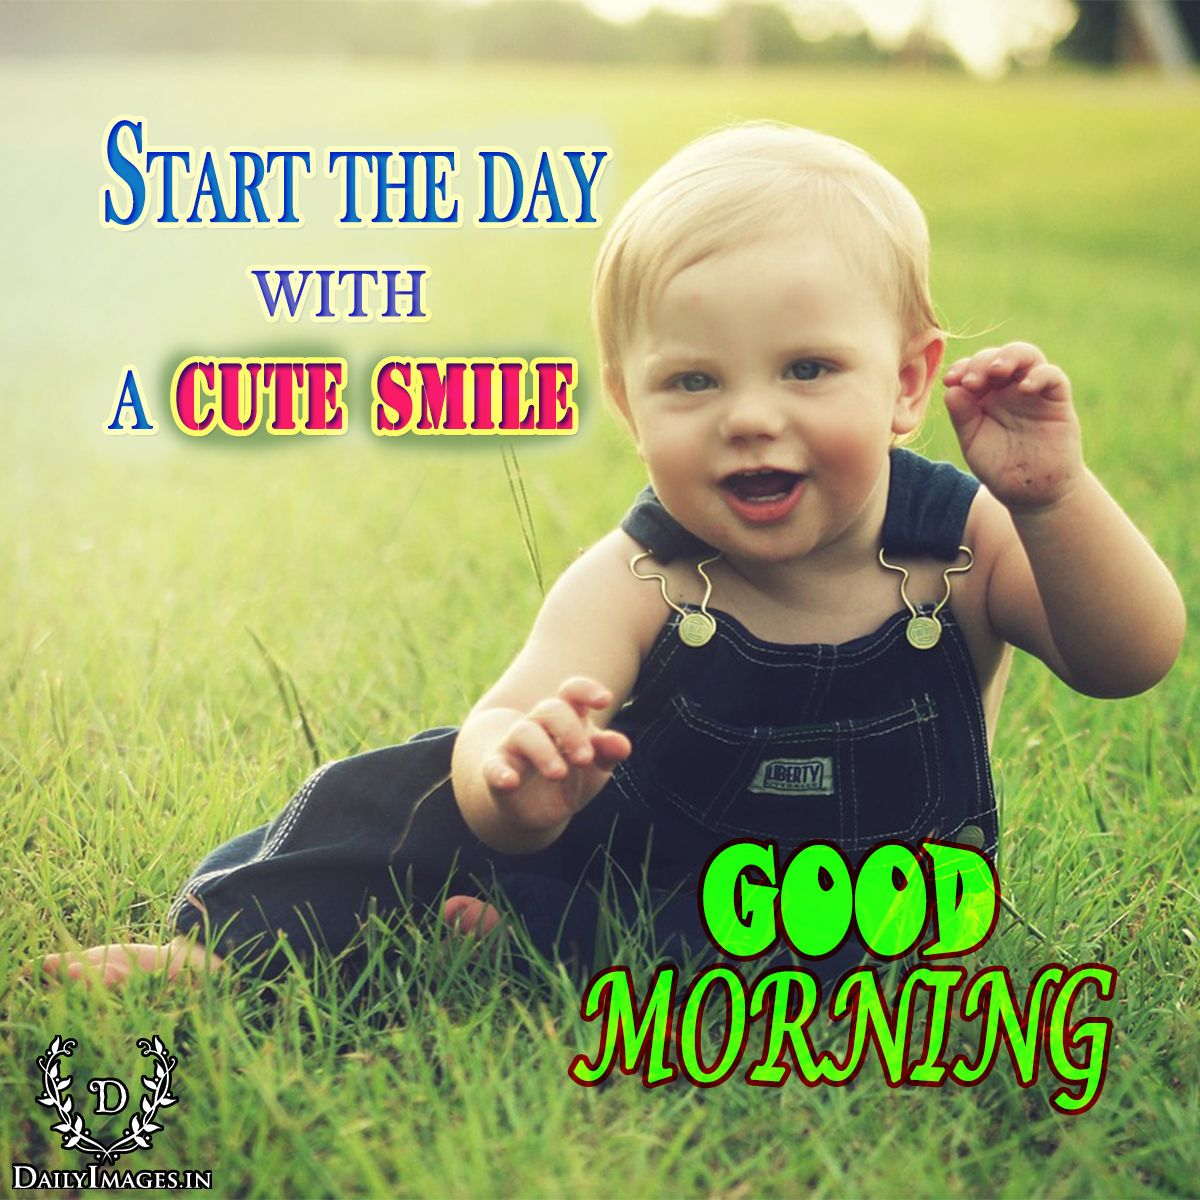 Start The Day With A Cute Smile Good Morning Goodmorning Gm Quotes Rare Baby Names Baby Crying Baby Photos